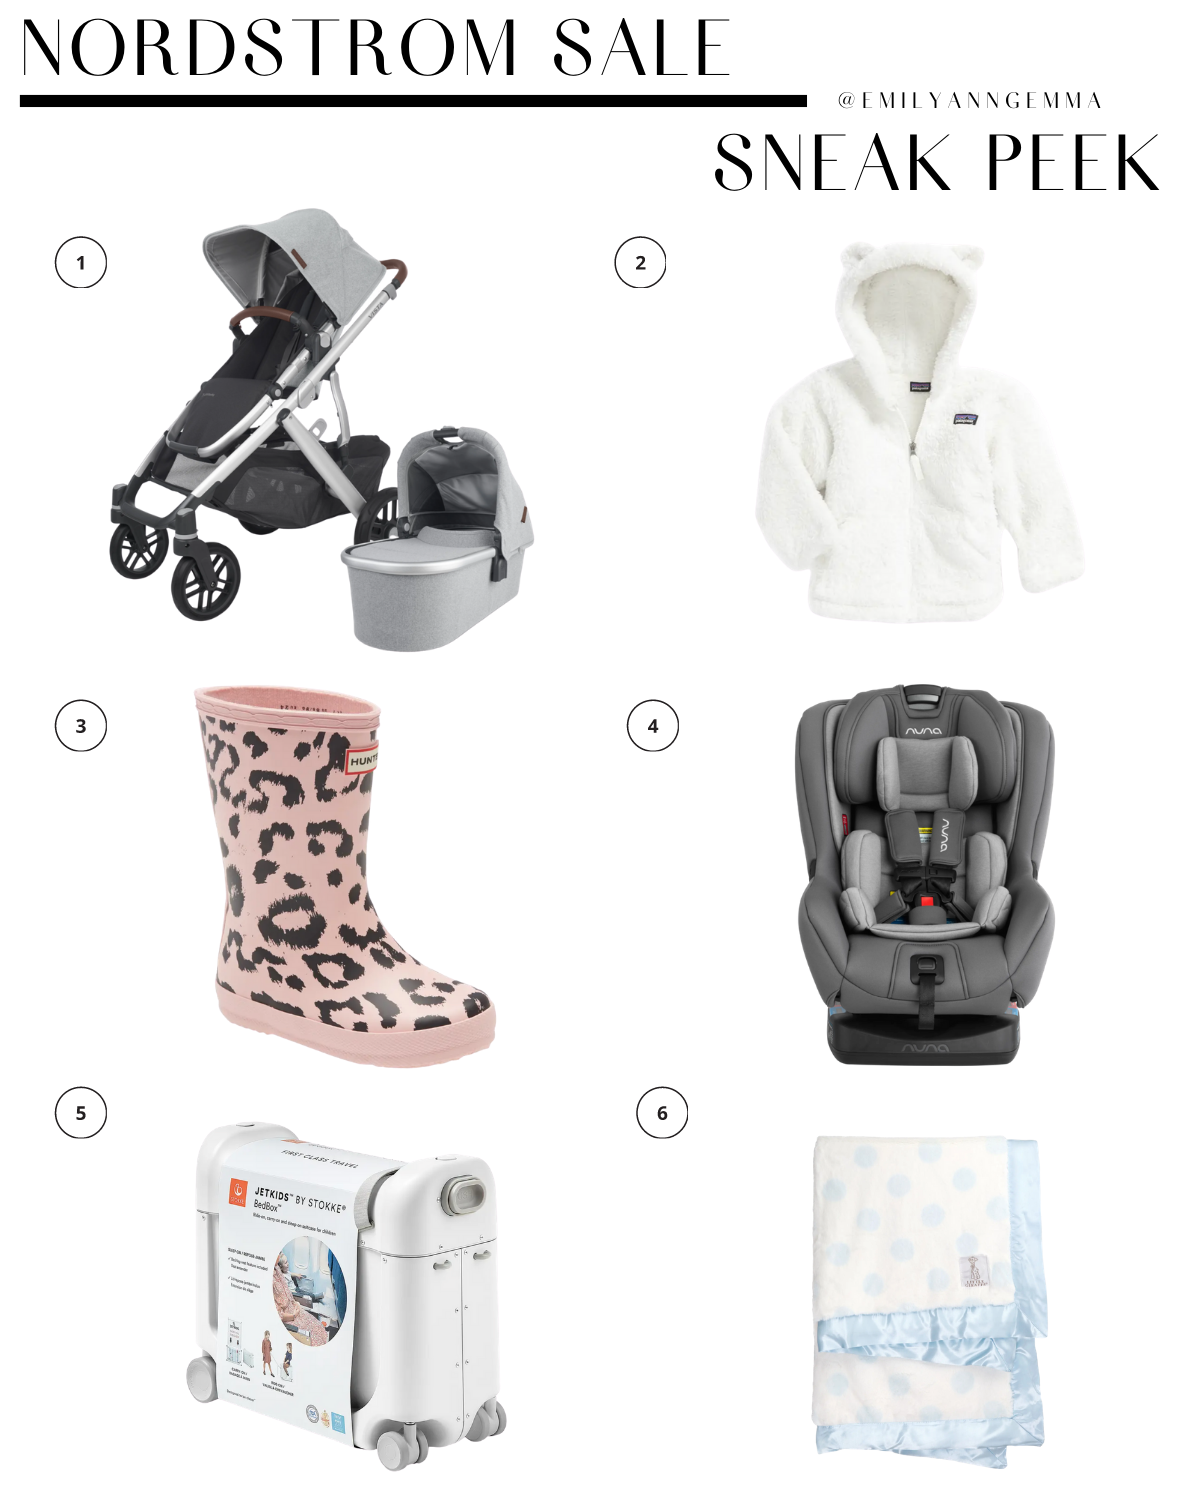 nsale 2020, nordstrom anniversary sale 2020, uppababy stroller Nordstorm sale, NUNA carseat Nordstrom sale, must have blog posts nordstrom sale 2020, Emily Ann Gemma, the sweetest thing blog | Nordstrom Anniversary Sale by popular US fashion blog, The Sweetest Thing: image of a Nordstrom UPPA BABY Vista V2 Stella Stroller with Bassinet, PATAGONIA Furry Friends Fleece Hoodie, HUNTER BOOTS, NUNA RAVA™ Flame Retardant Free Convertible Car Seat, STOKKE Jetkids Suitcase, LITTLE GIRAFFE Luxe™ Dream Dot Faux Fur Baby Blanket.